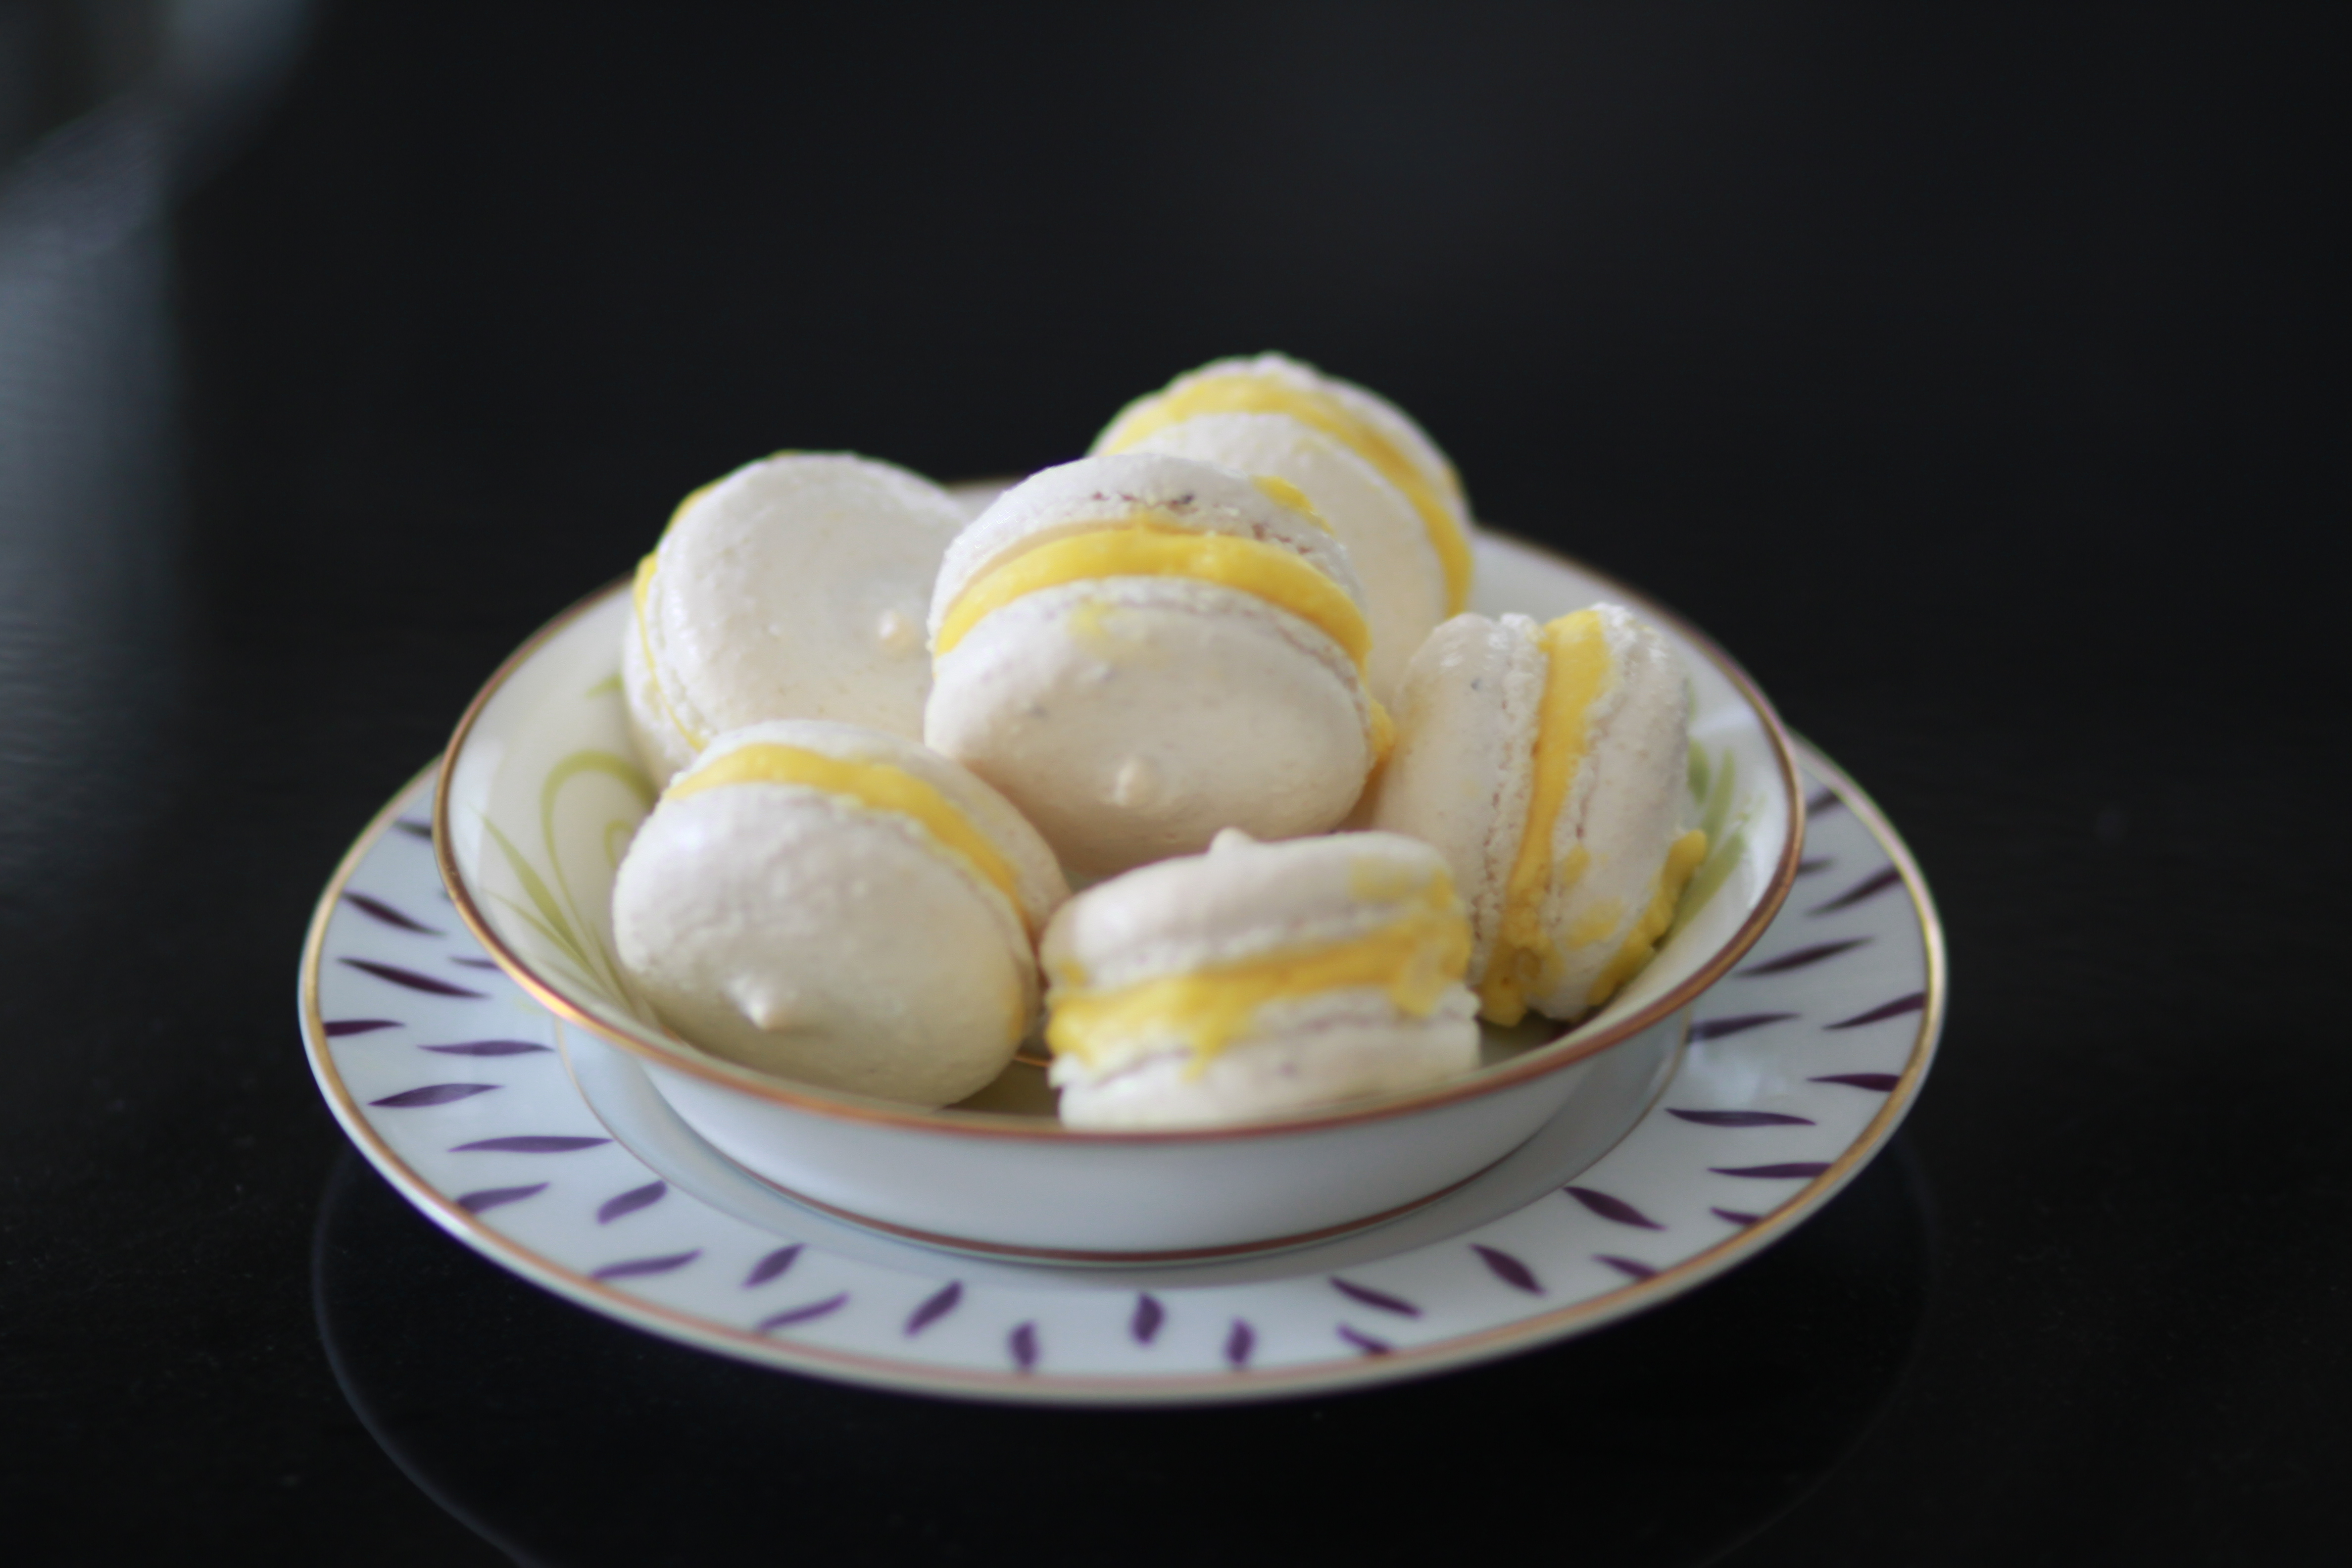 French Macarons with Lemon Curd